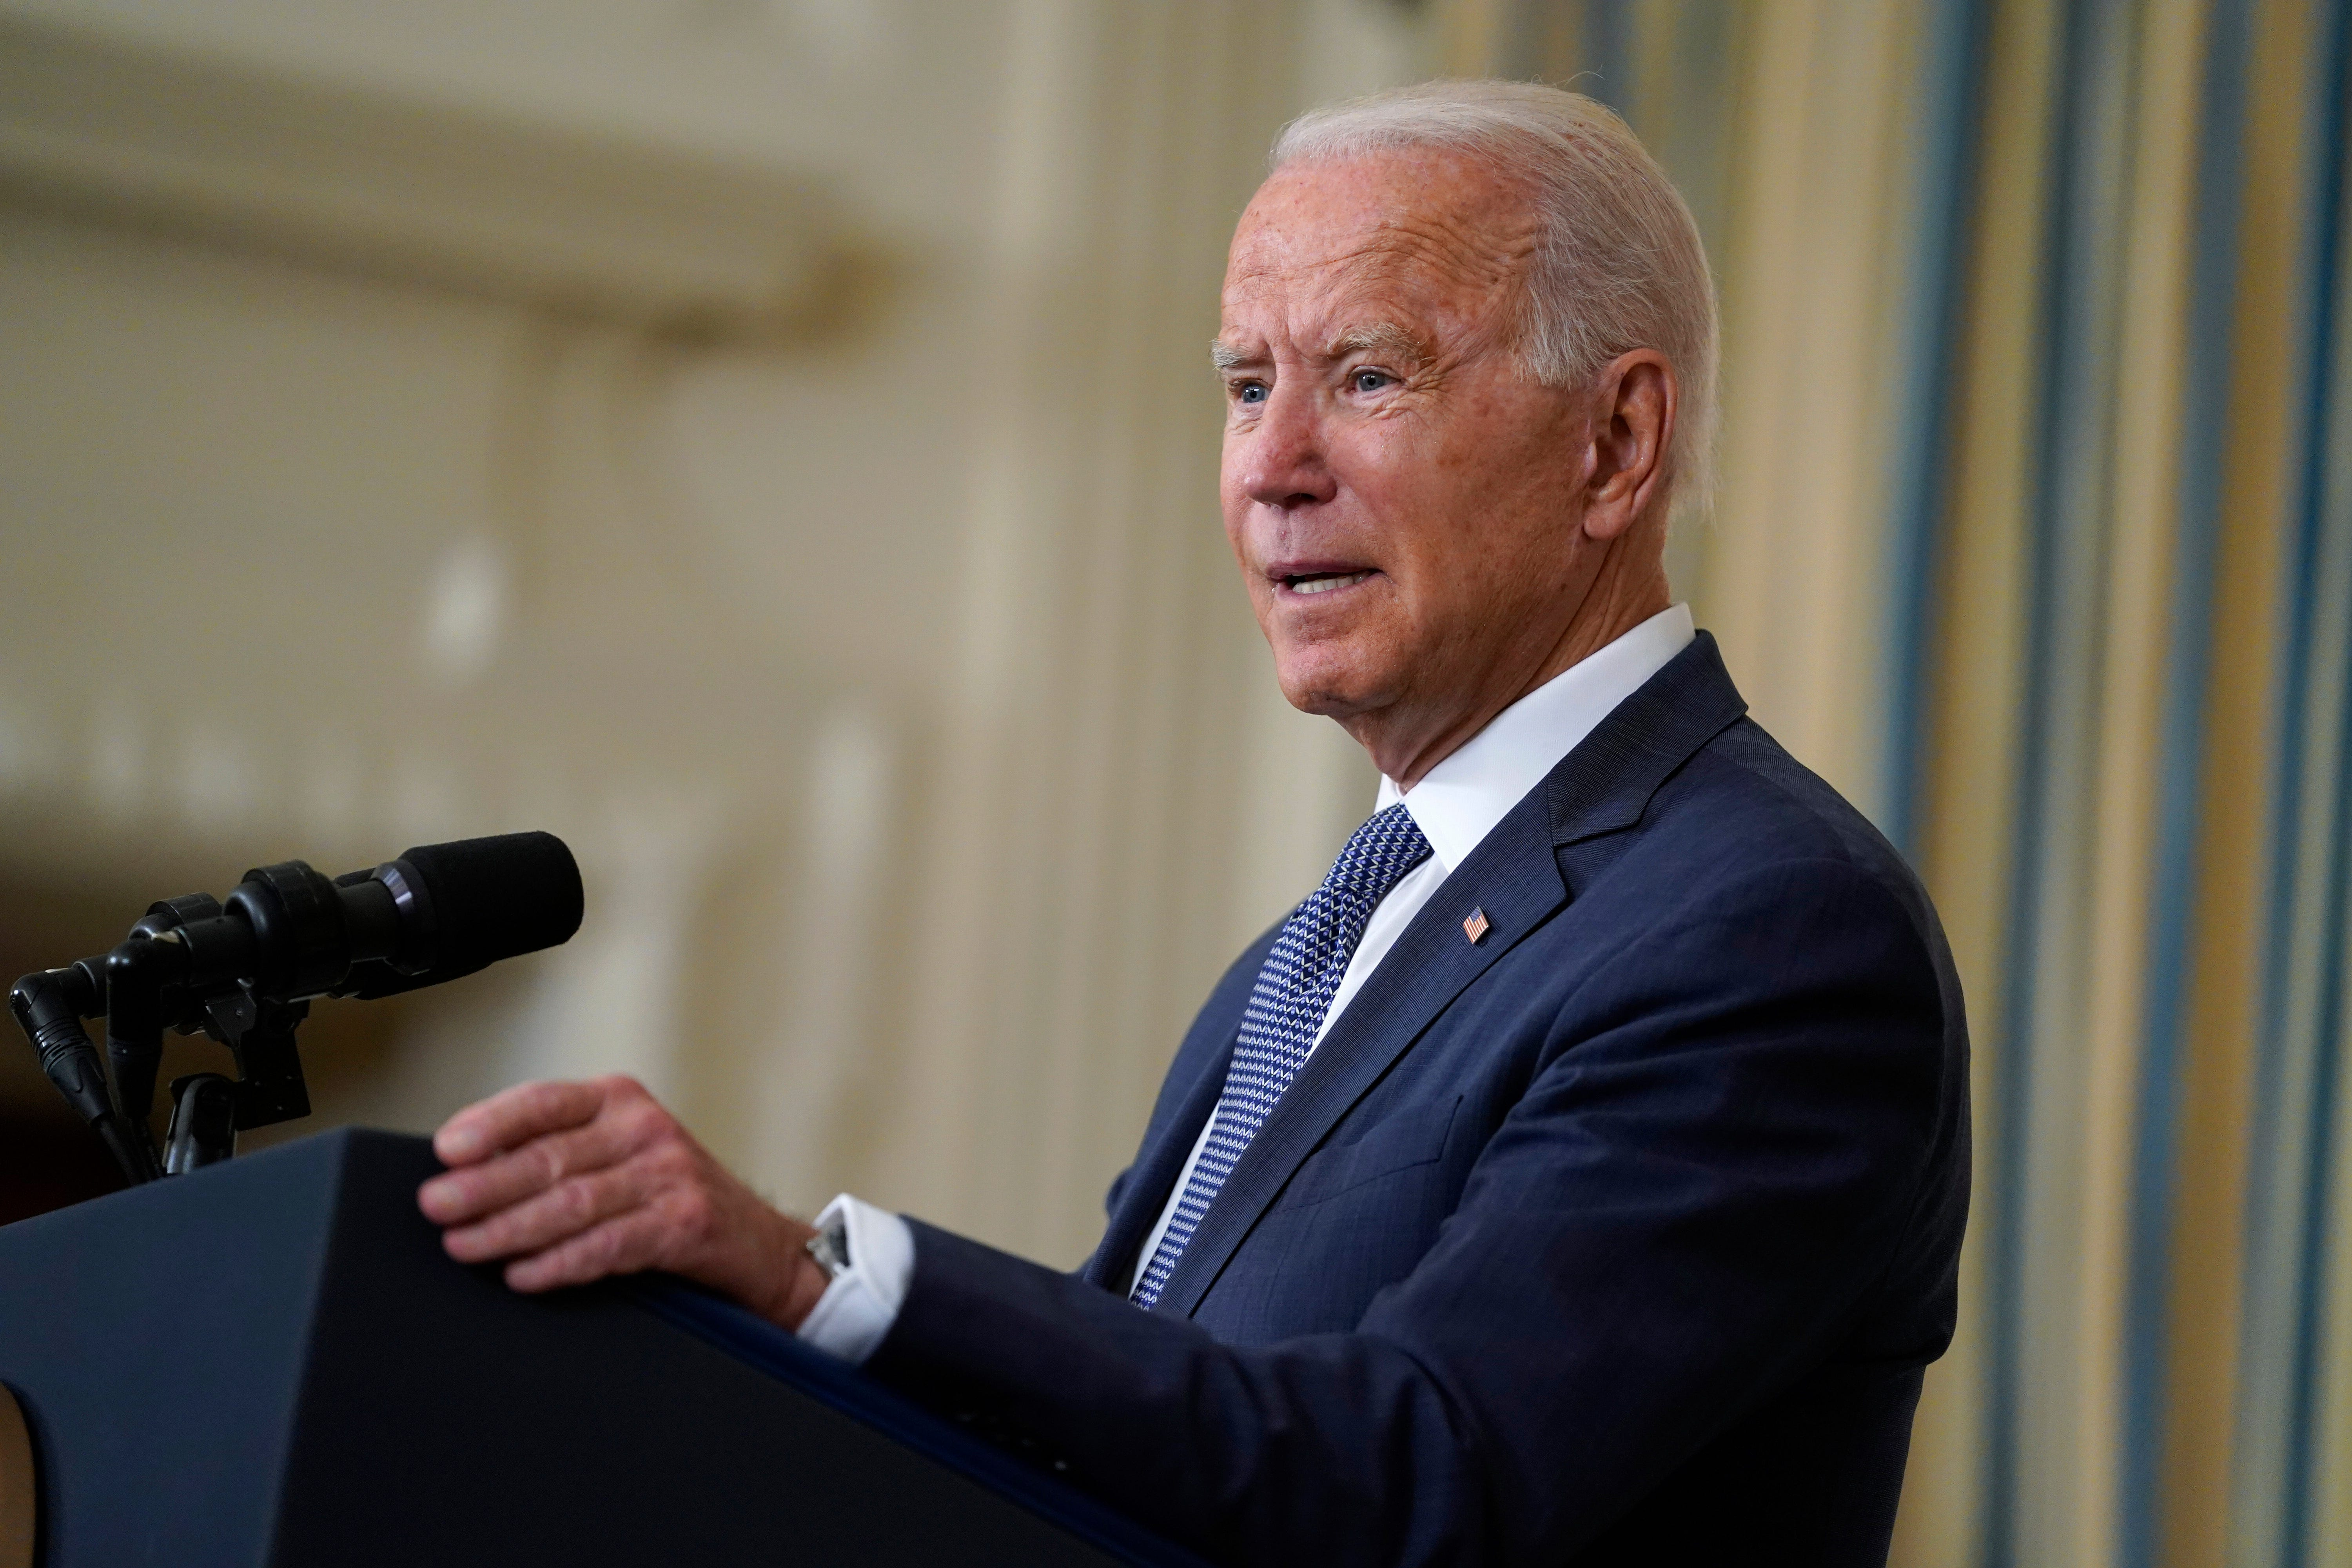 usatoday.com - Michael Collins and Rebecca Morin, USA TODAY - Biden administration offers new aid for mortgage borrowers at risk of foreclosure due to COVID-19 pandemic